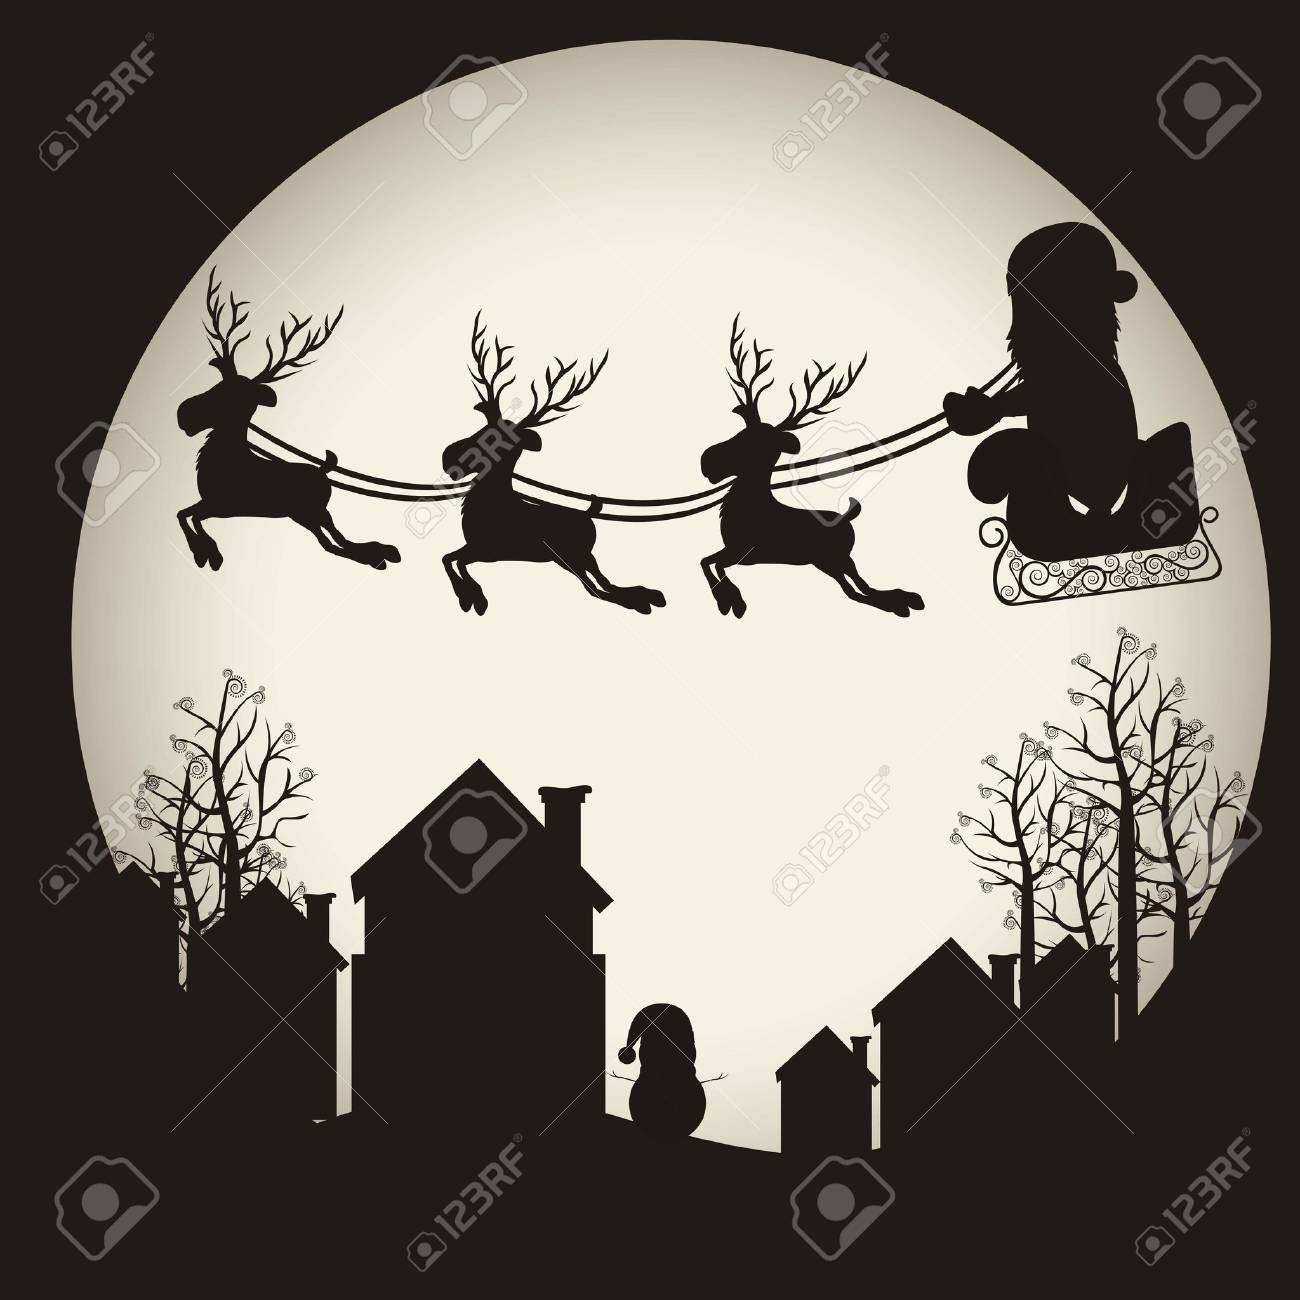 illustration of santa with sleigh and reindeer, on the eve of Christmas, illustration Vector Stock Vector - 15564140